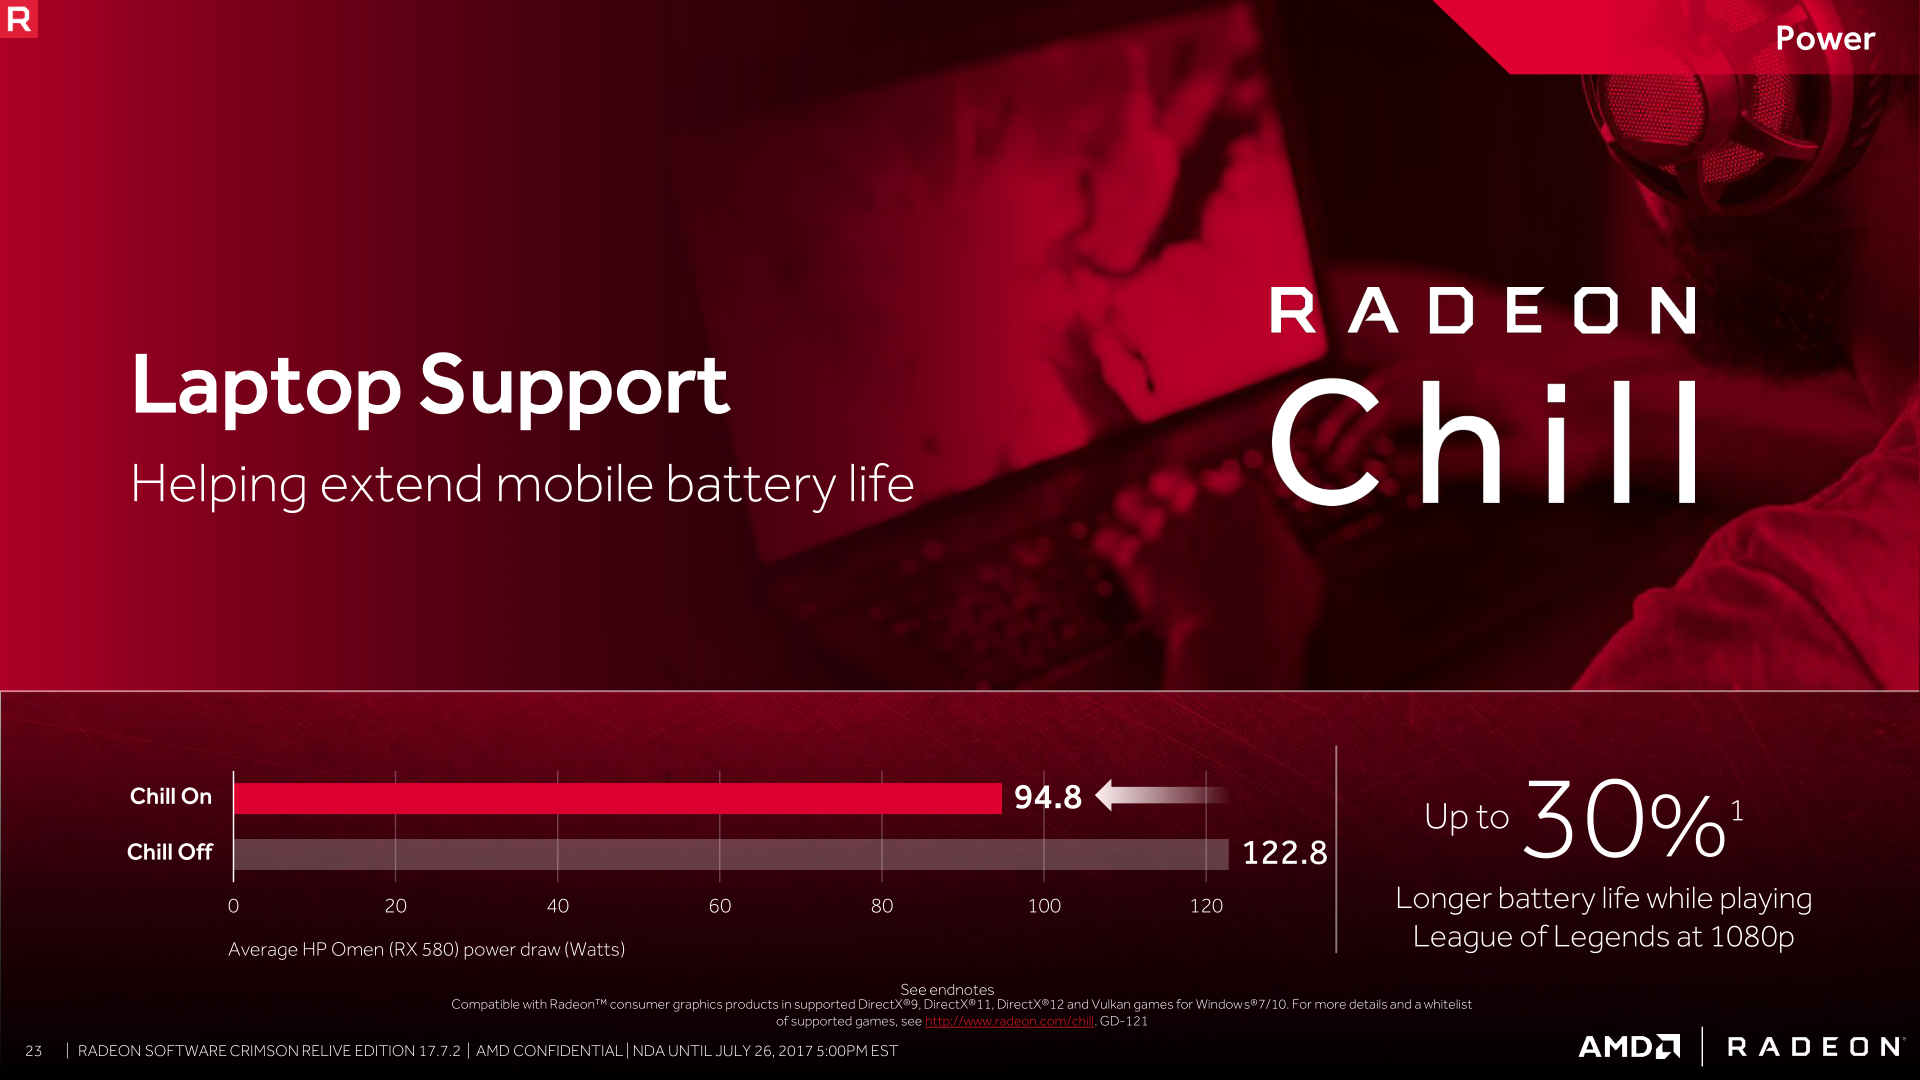 Radeon Chill 2017: Better Control, More Support - AMD